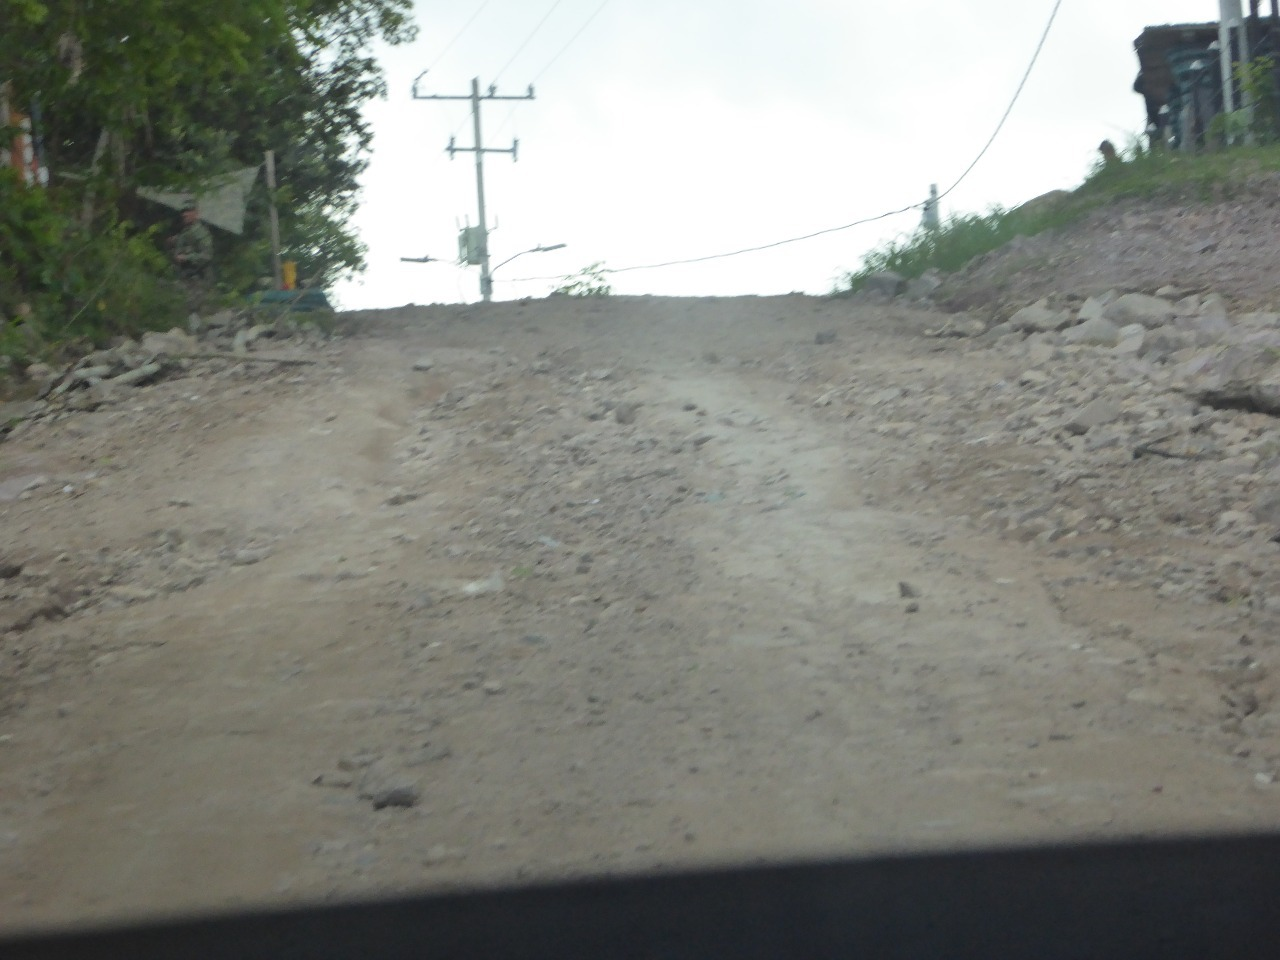 Picture of the road into Santa Rosa